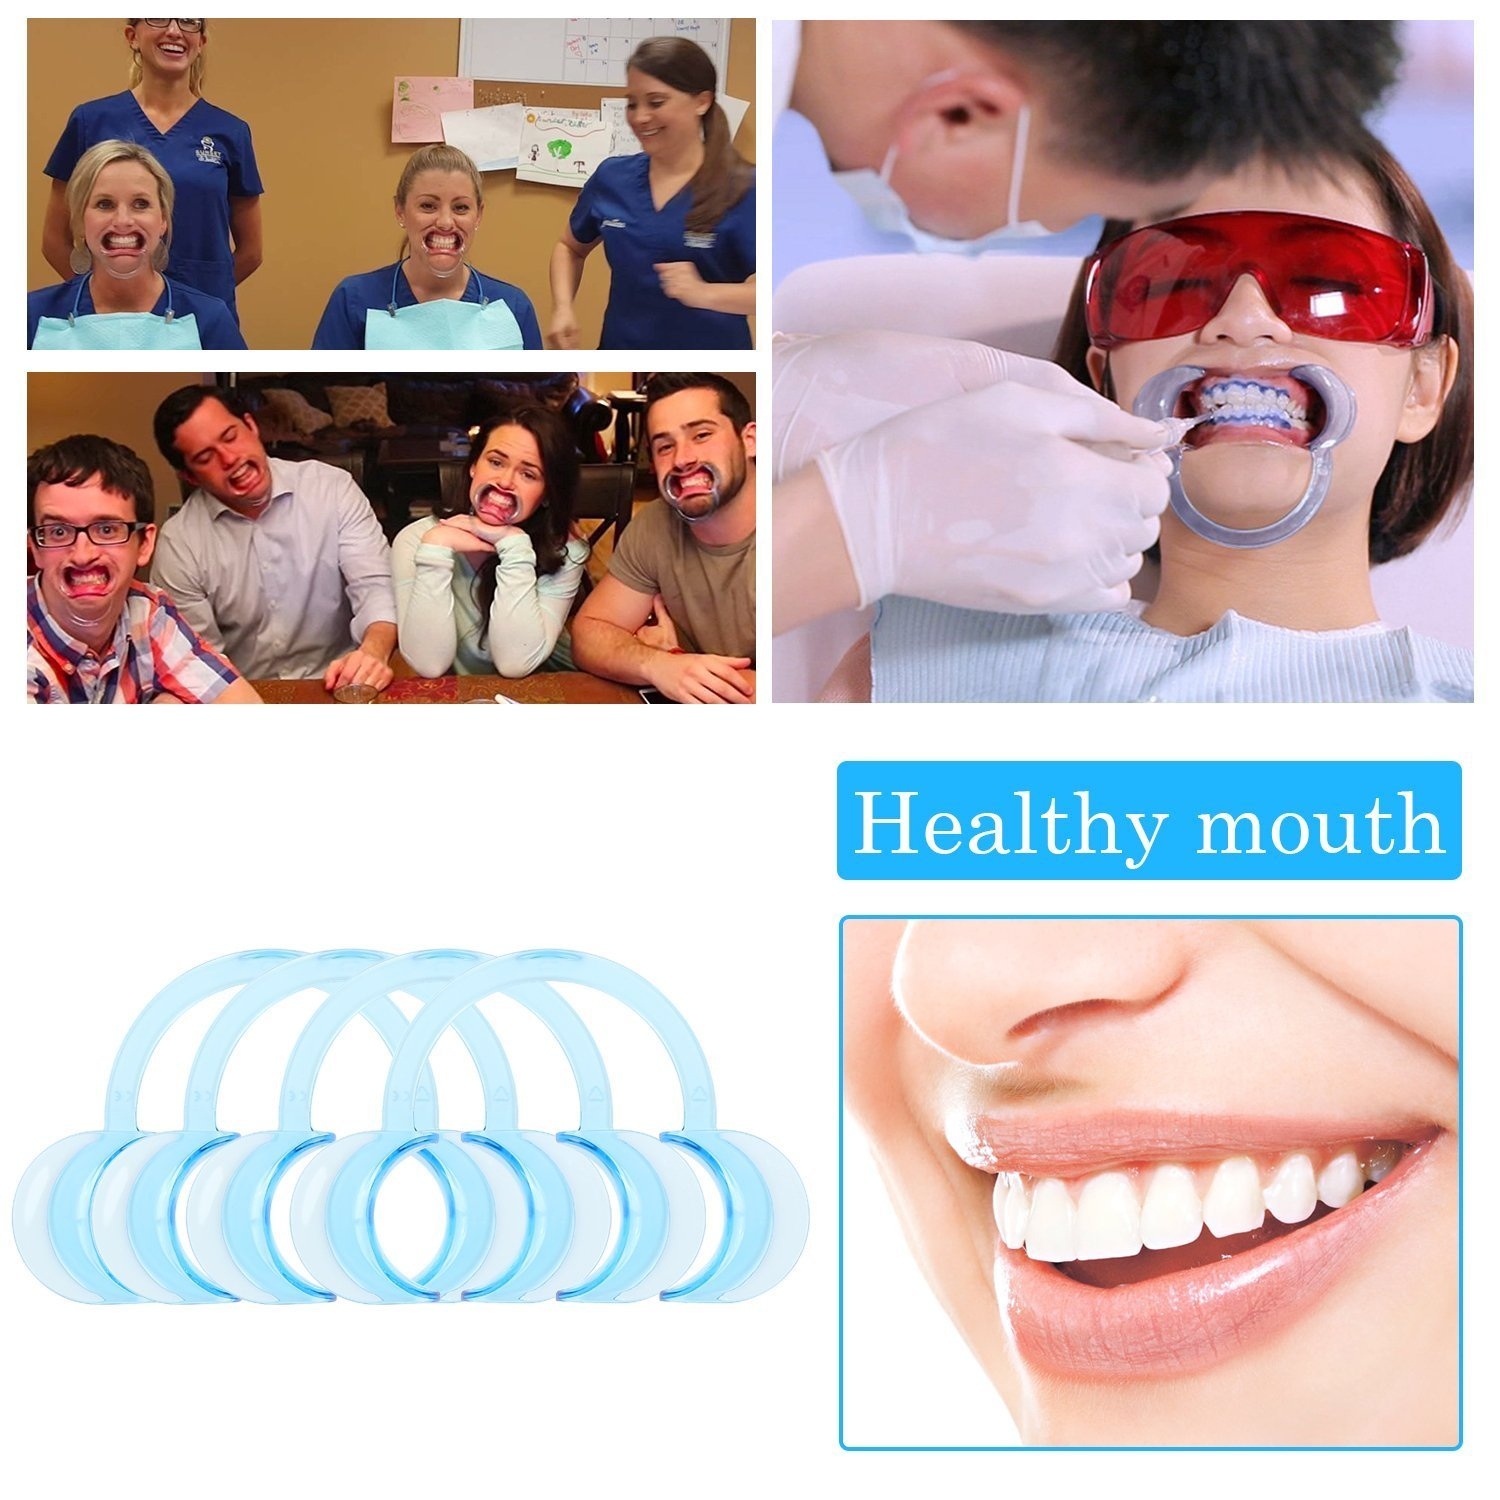 20 Pack Cheek Retractor for Watch Ya Mouth, Speak Out Game Mouth Pieces C-SHAPE, Adult & kids Teeth Whitening Intraoral Lip Retractors Mouth Opener Best Clear Blue Color (12 Medium 4 Small 4 Large)